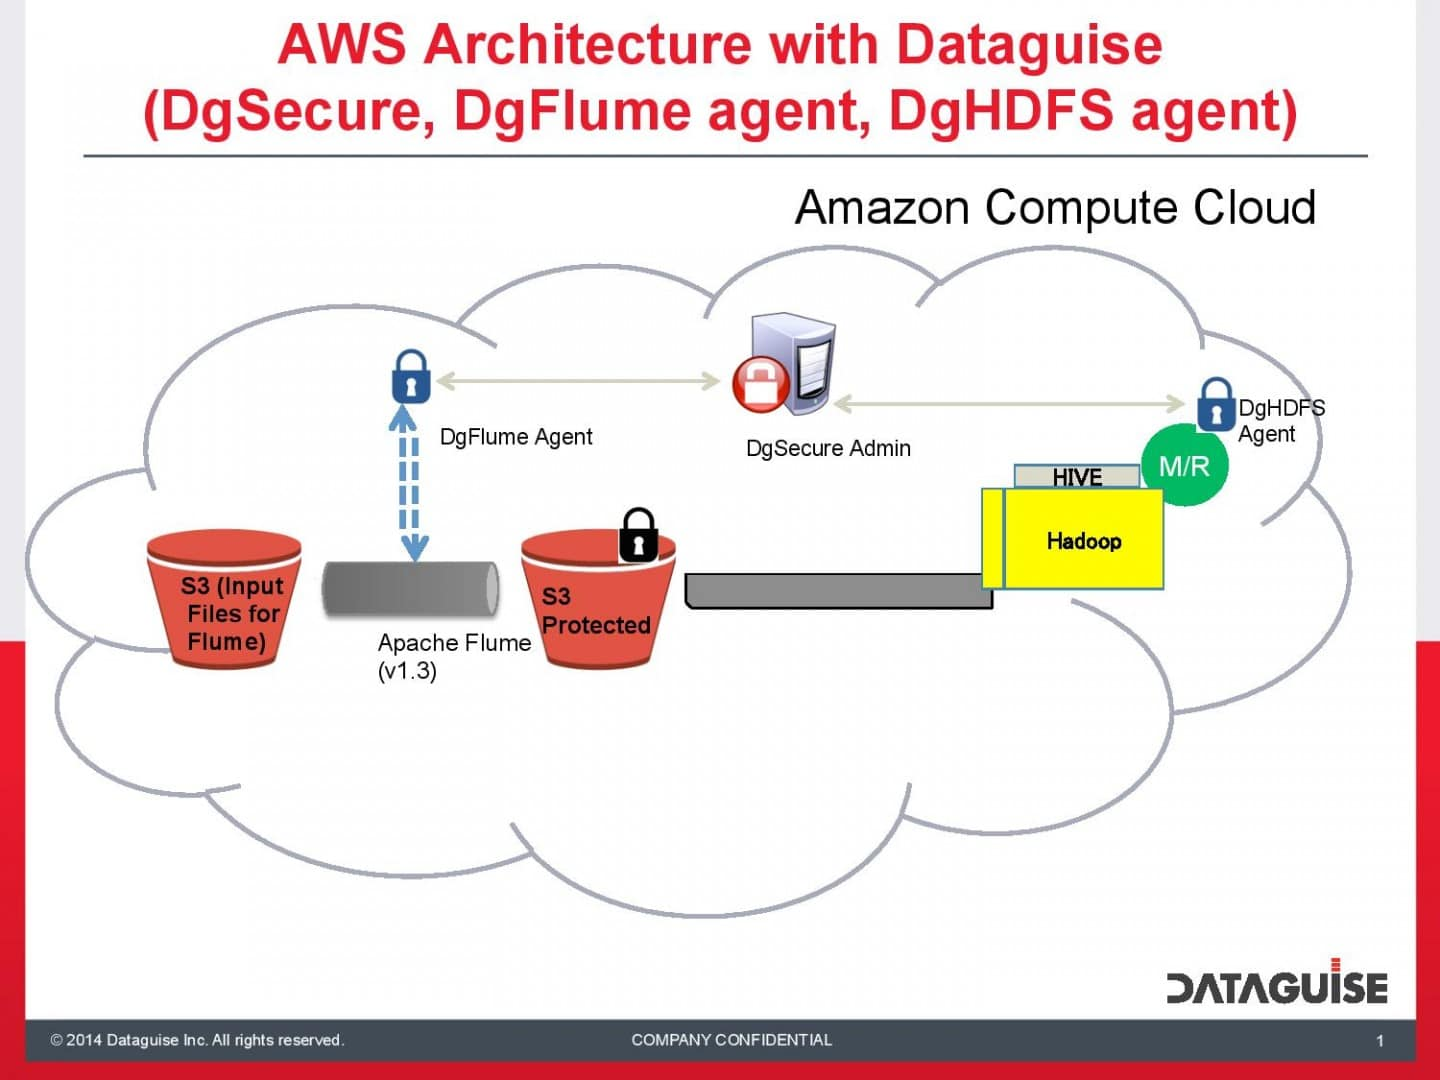 Dataguise Brings Data-Centric Security to Hadoop in the Cloud